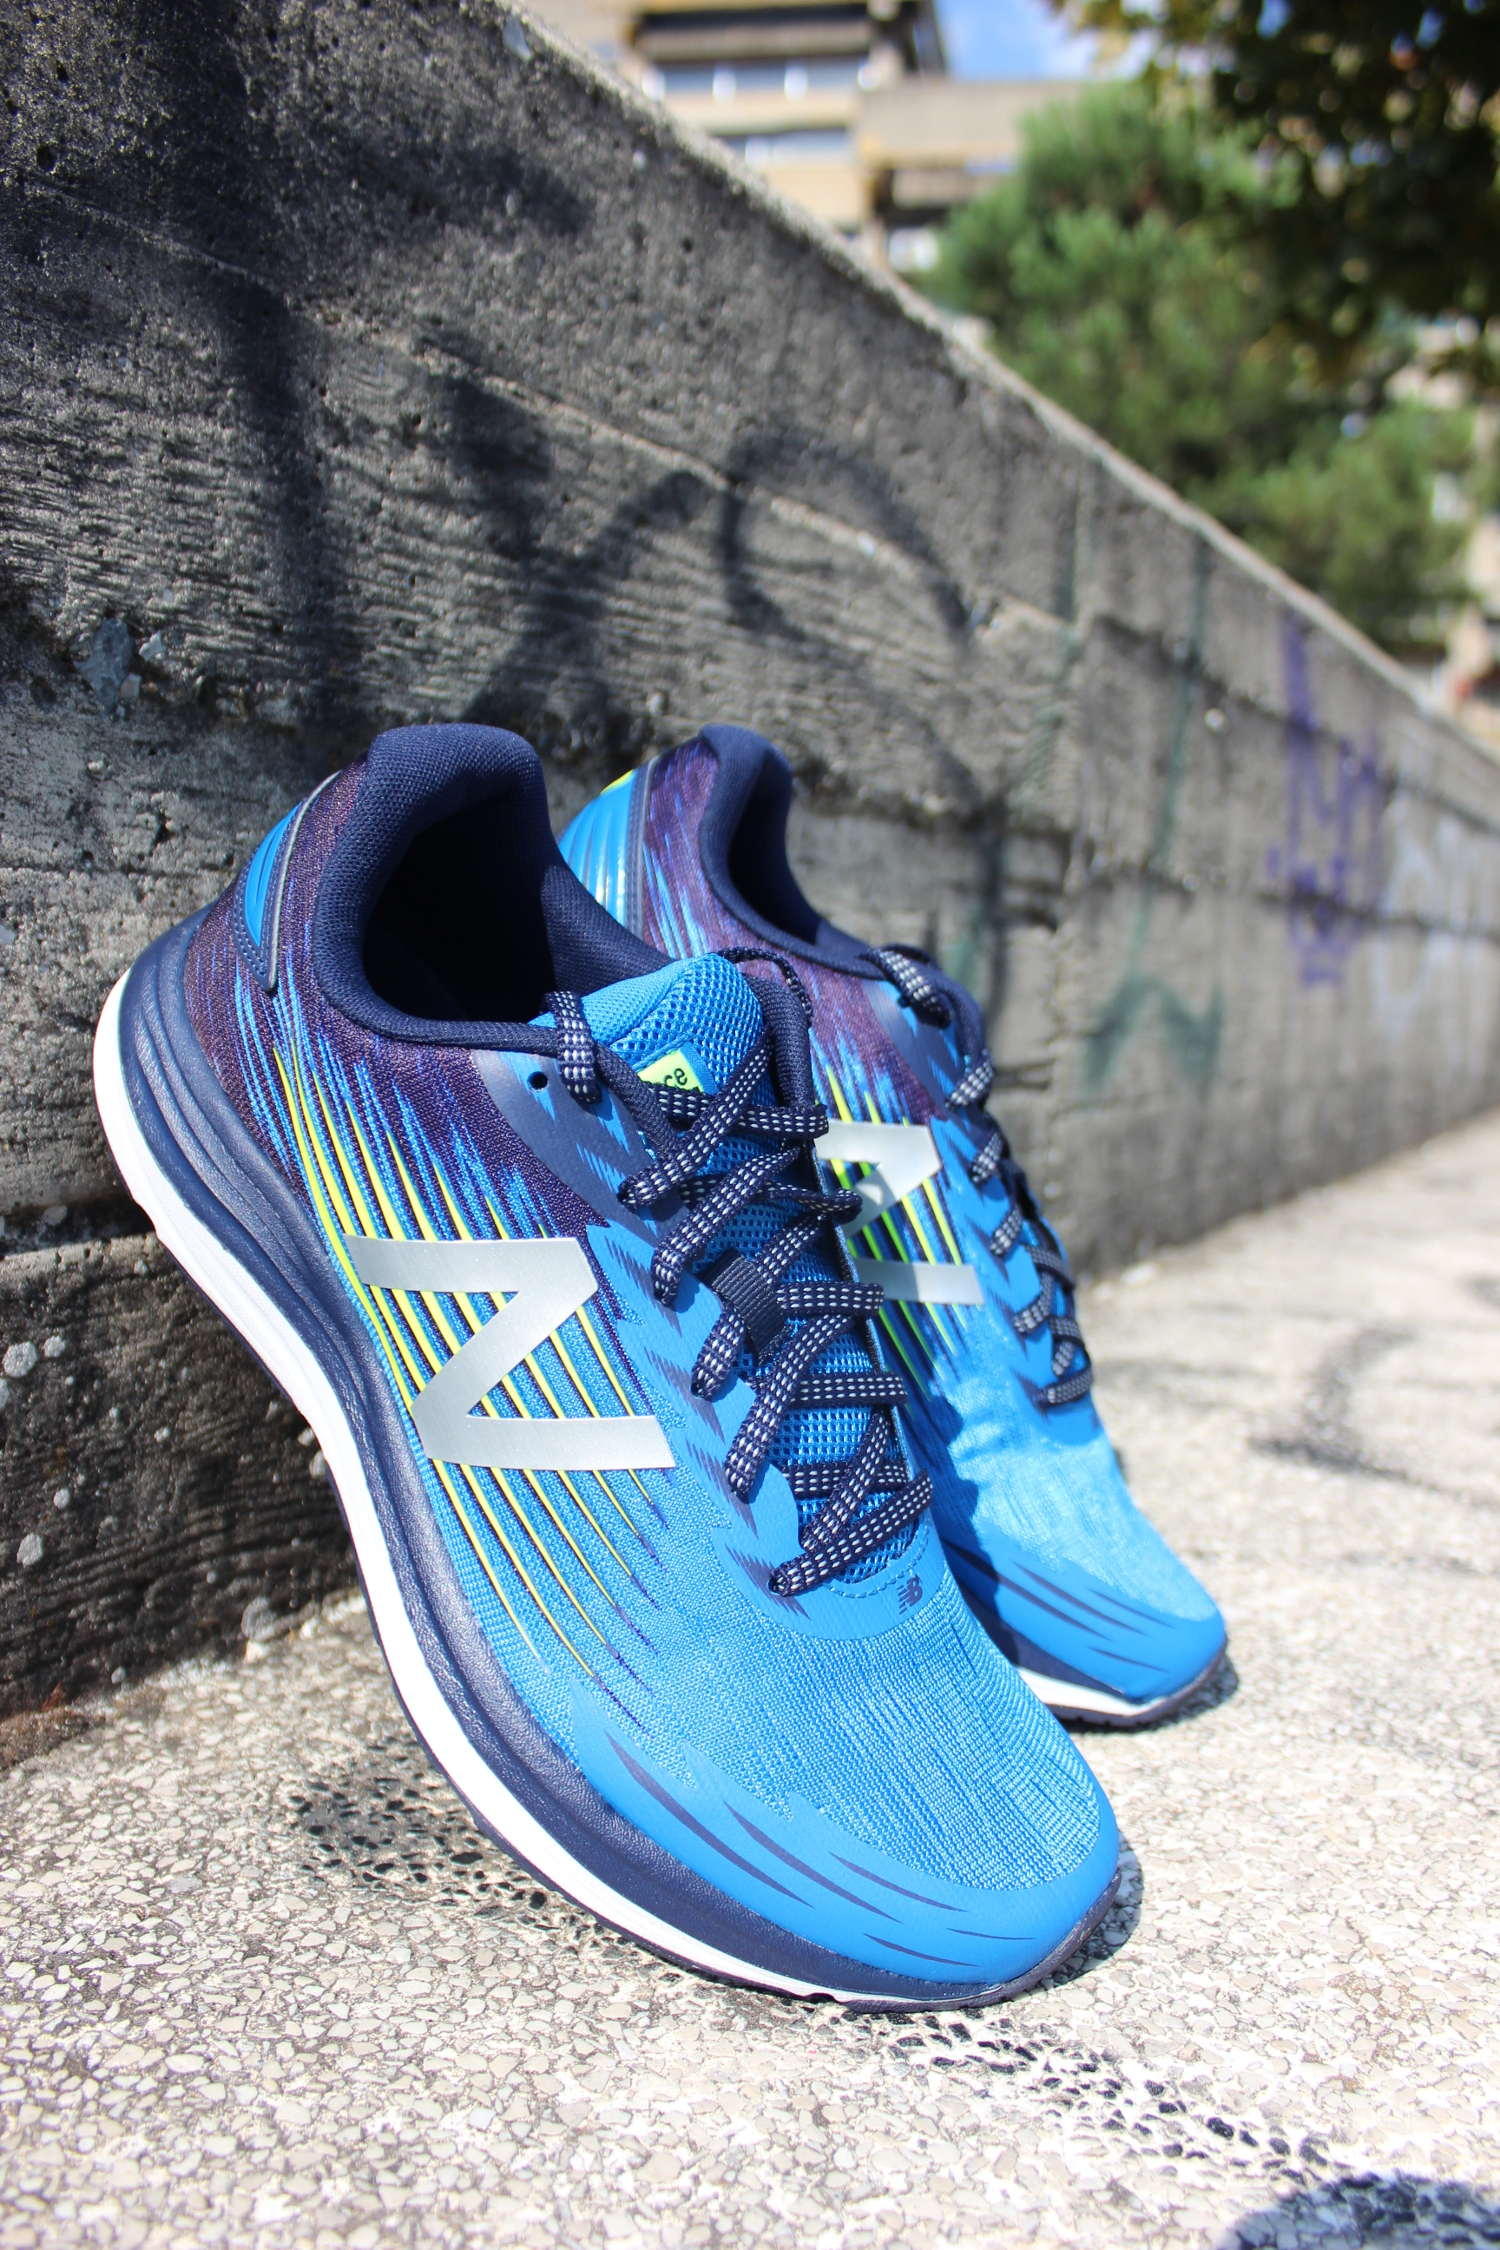 Corsa Running Synact Balance Trainers Shoes Uomo Blu New Sneakers Scarpe qEFRnwf